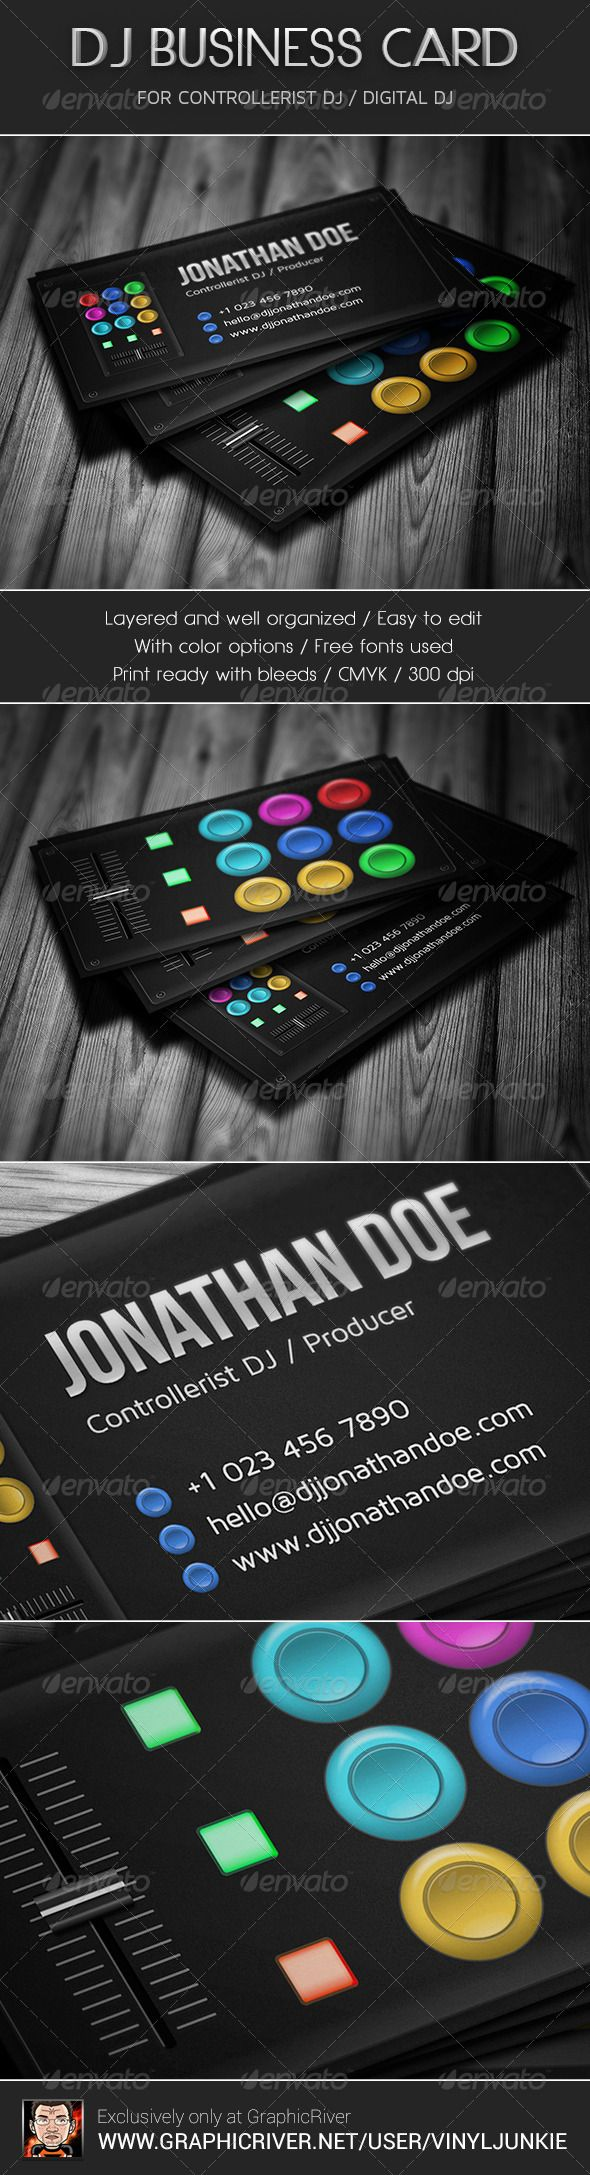 The 25 best dj business cards ideas on pinterest free business the 25 best dj business cards ideas on pinterest free business card design transparent design and plastic business cards magicingreecefo Choice Image